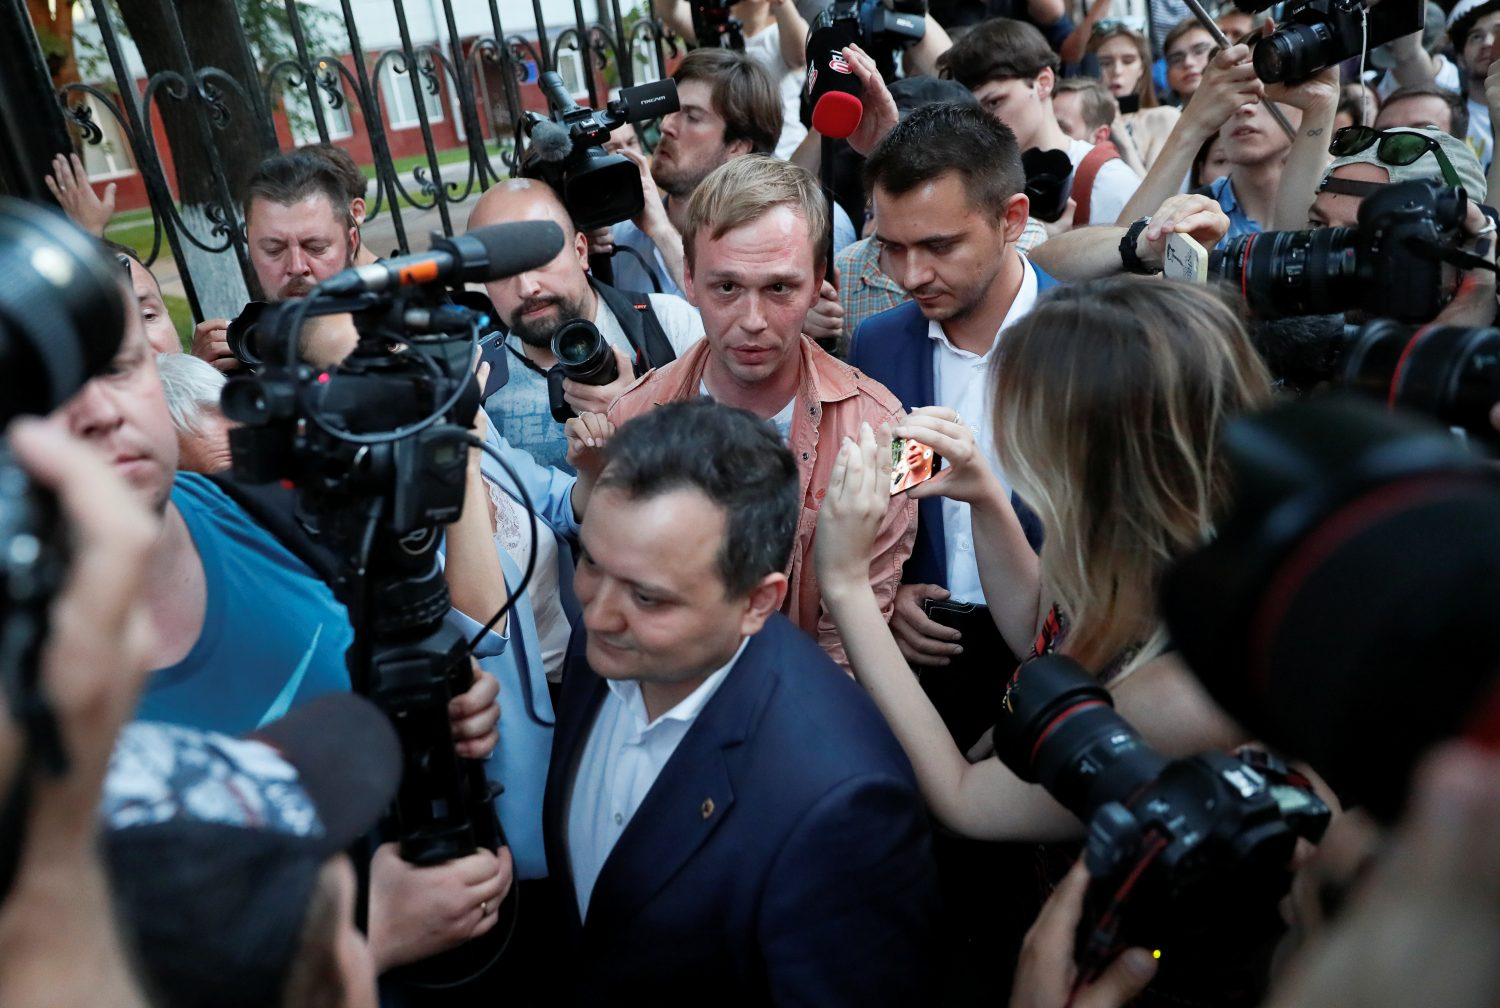 Russian journalist Ivan Golunov (C), who was freed from house arrest after police abruptly dropped drugs charges against him, reacts during a meeting with the media and his supporters outside the office of criminal investigations in Moscow, Russia June 11, 2019. REUTERS/Shamil Zhumatov